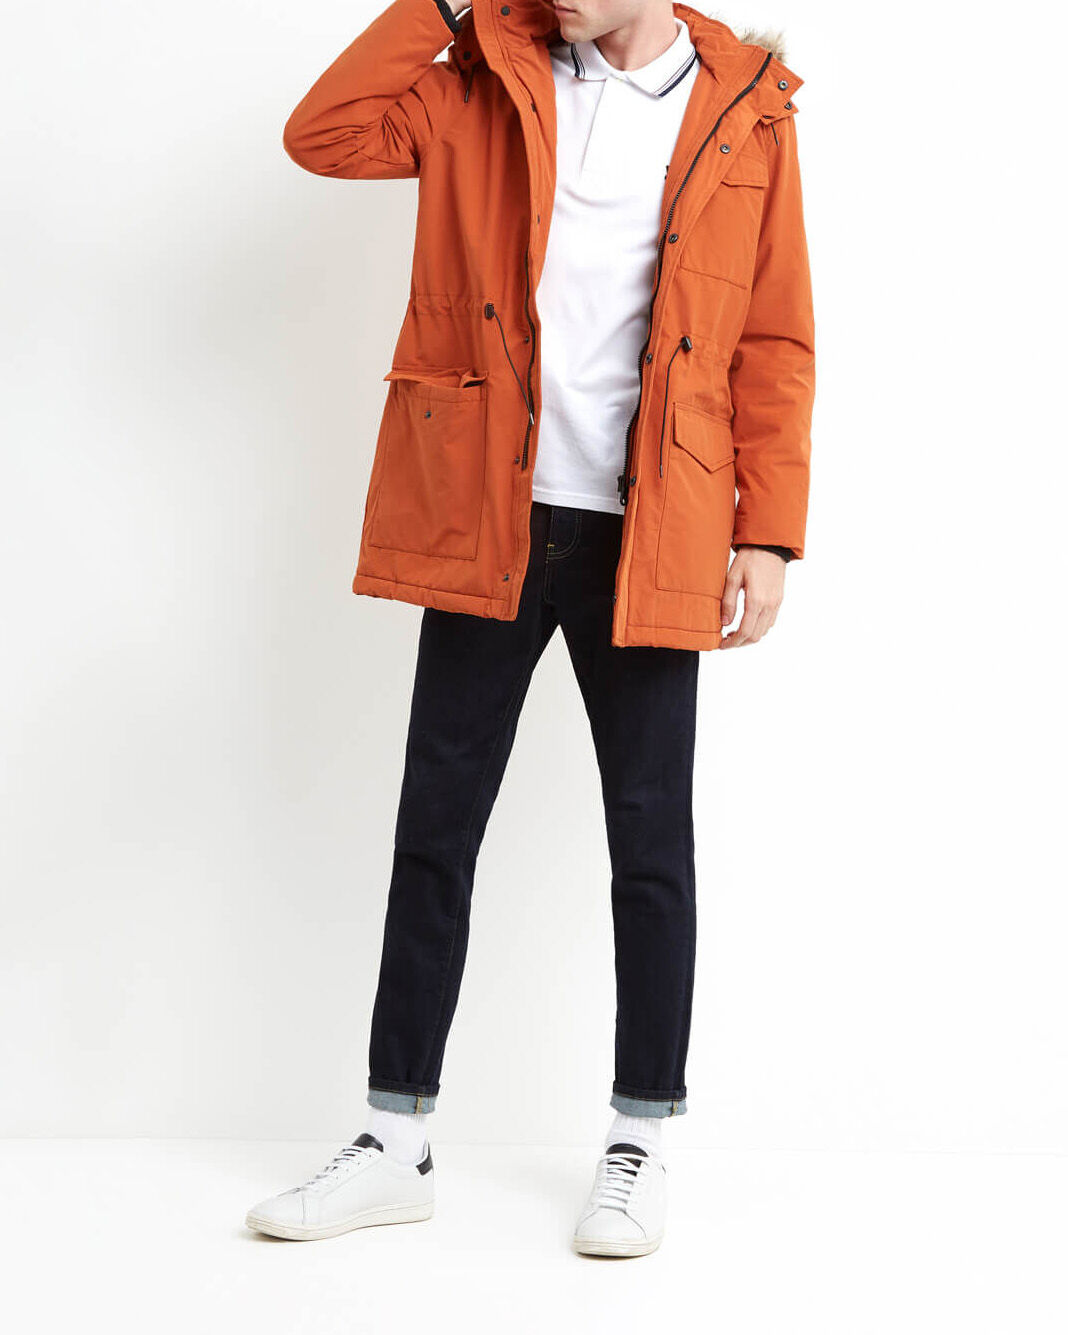 Lyle-and-Scott-Mens-Winterweight-Microfleece-Lined-Parka thumbnail 14